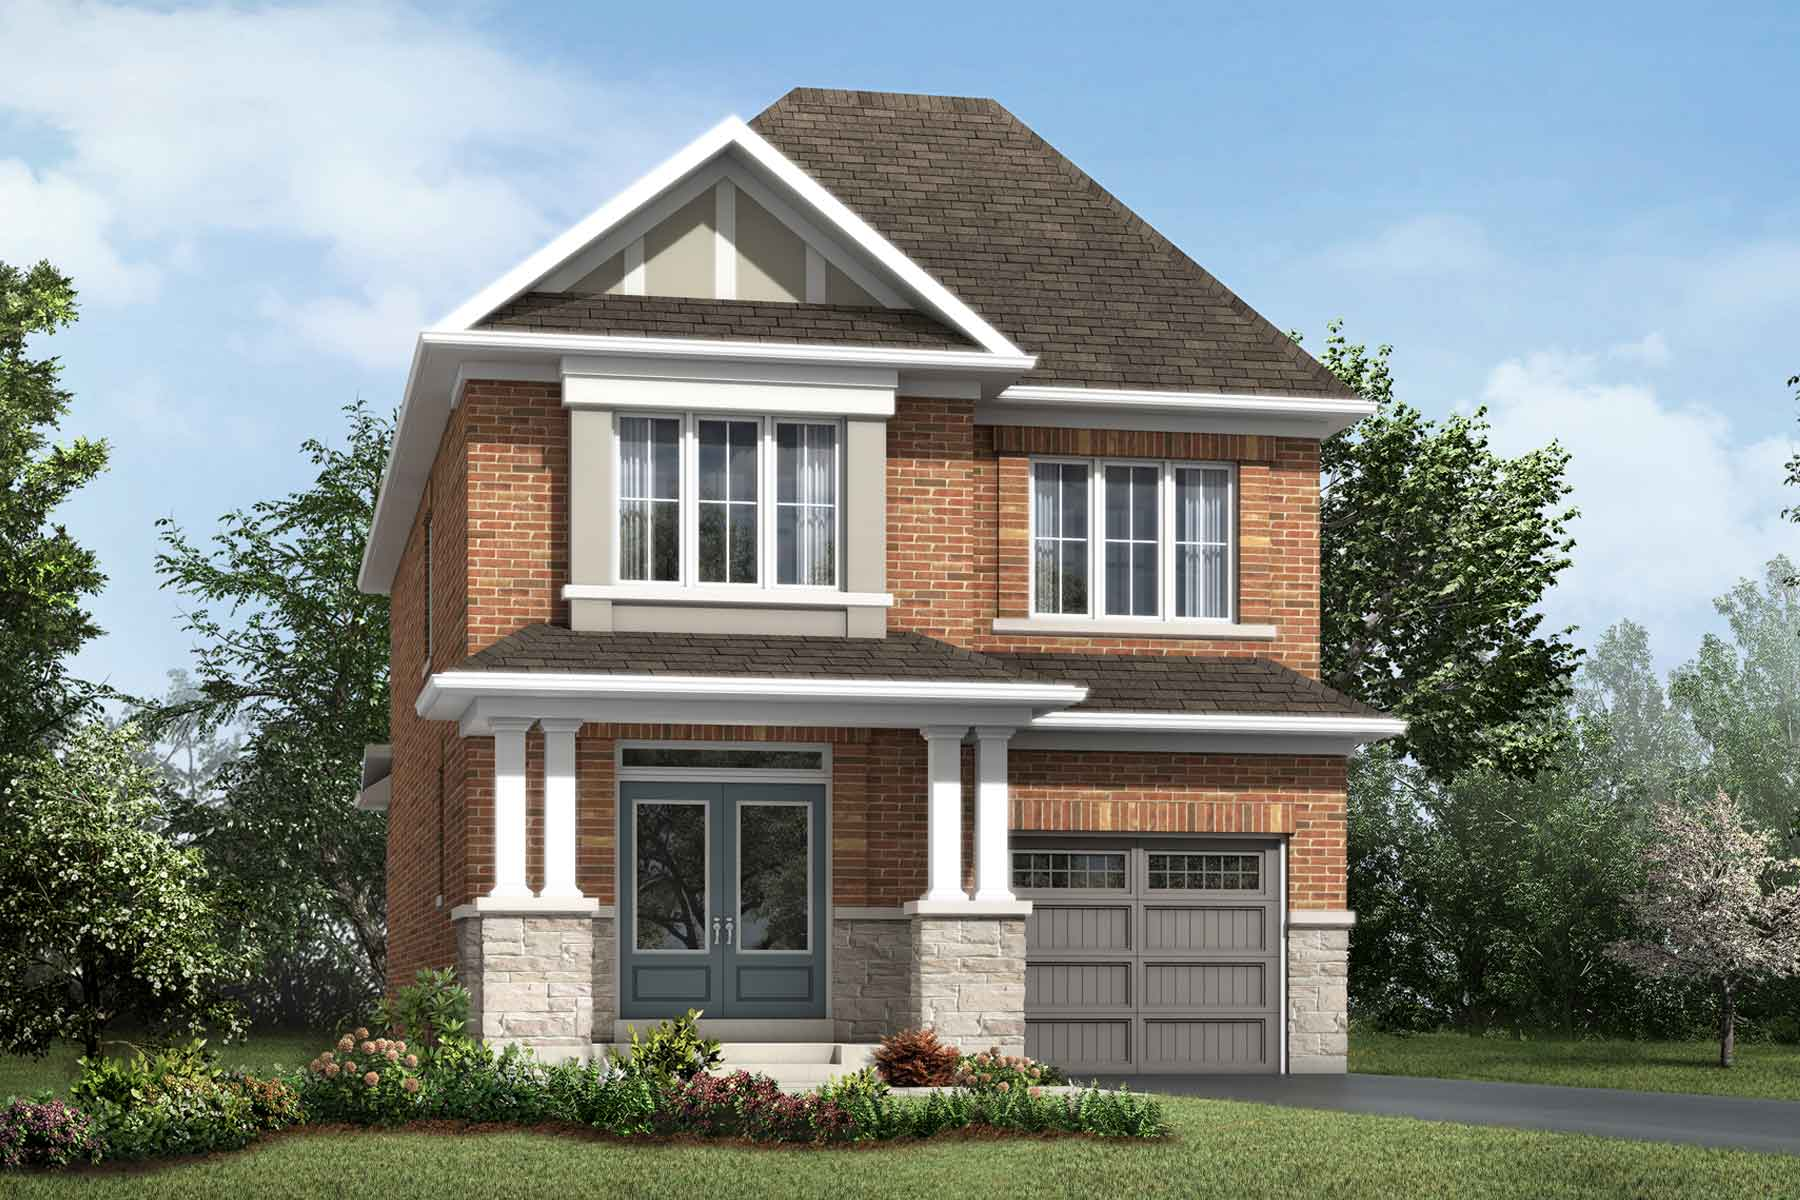 Holbrook Plan ElevationTraditional_Soleil_Holbrook at Soleil in Milton Ontario by Mattamy Homes